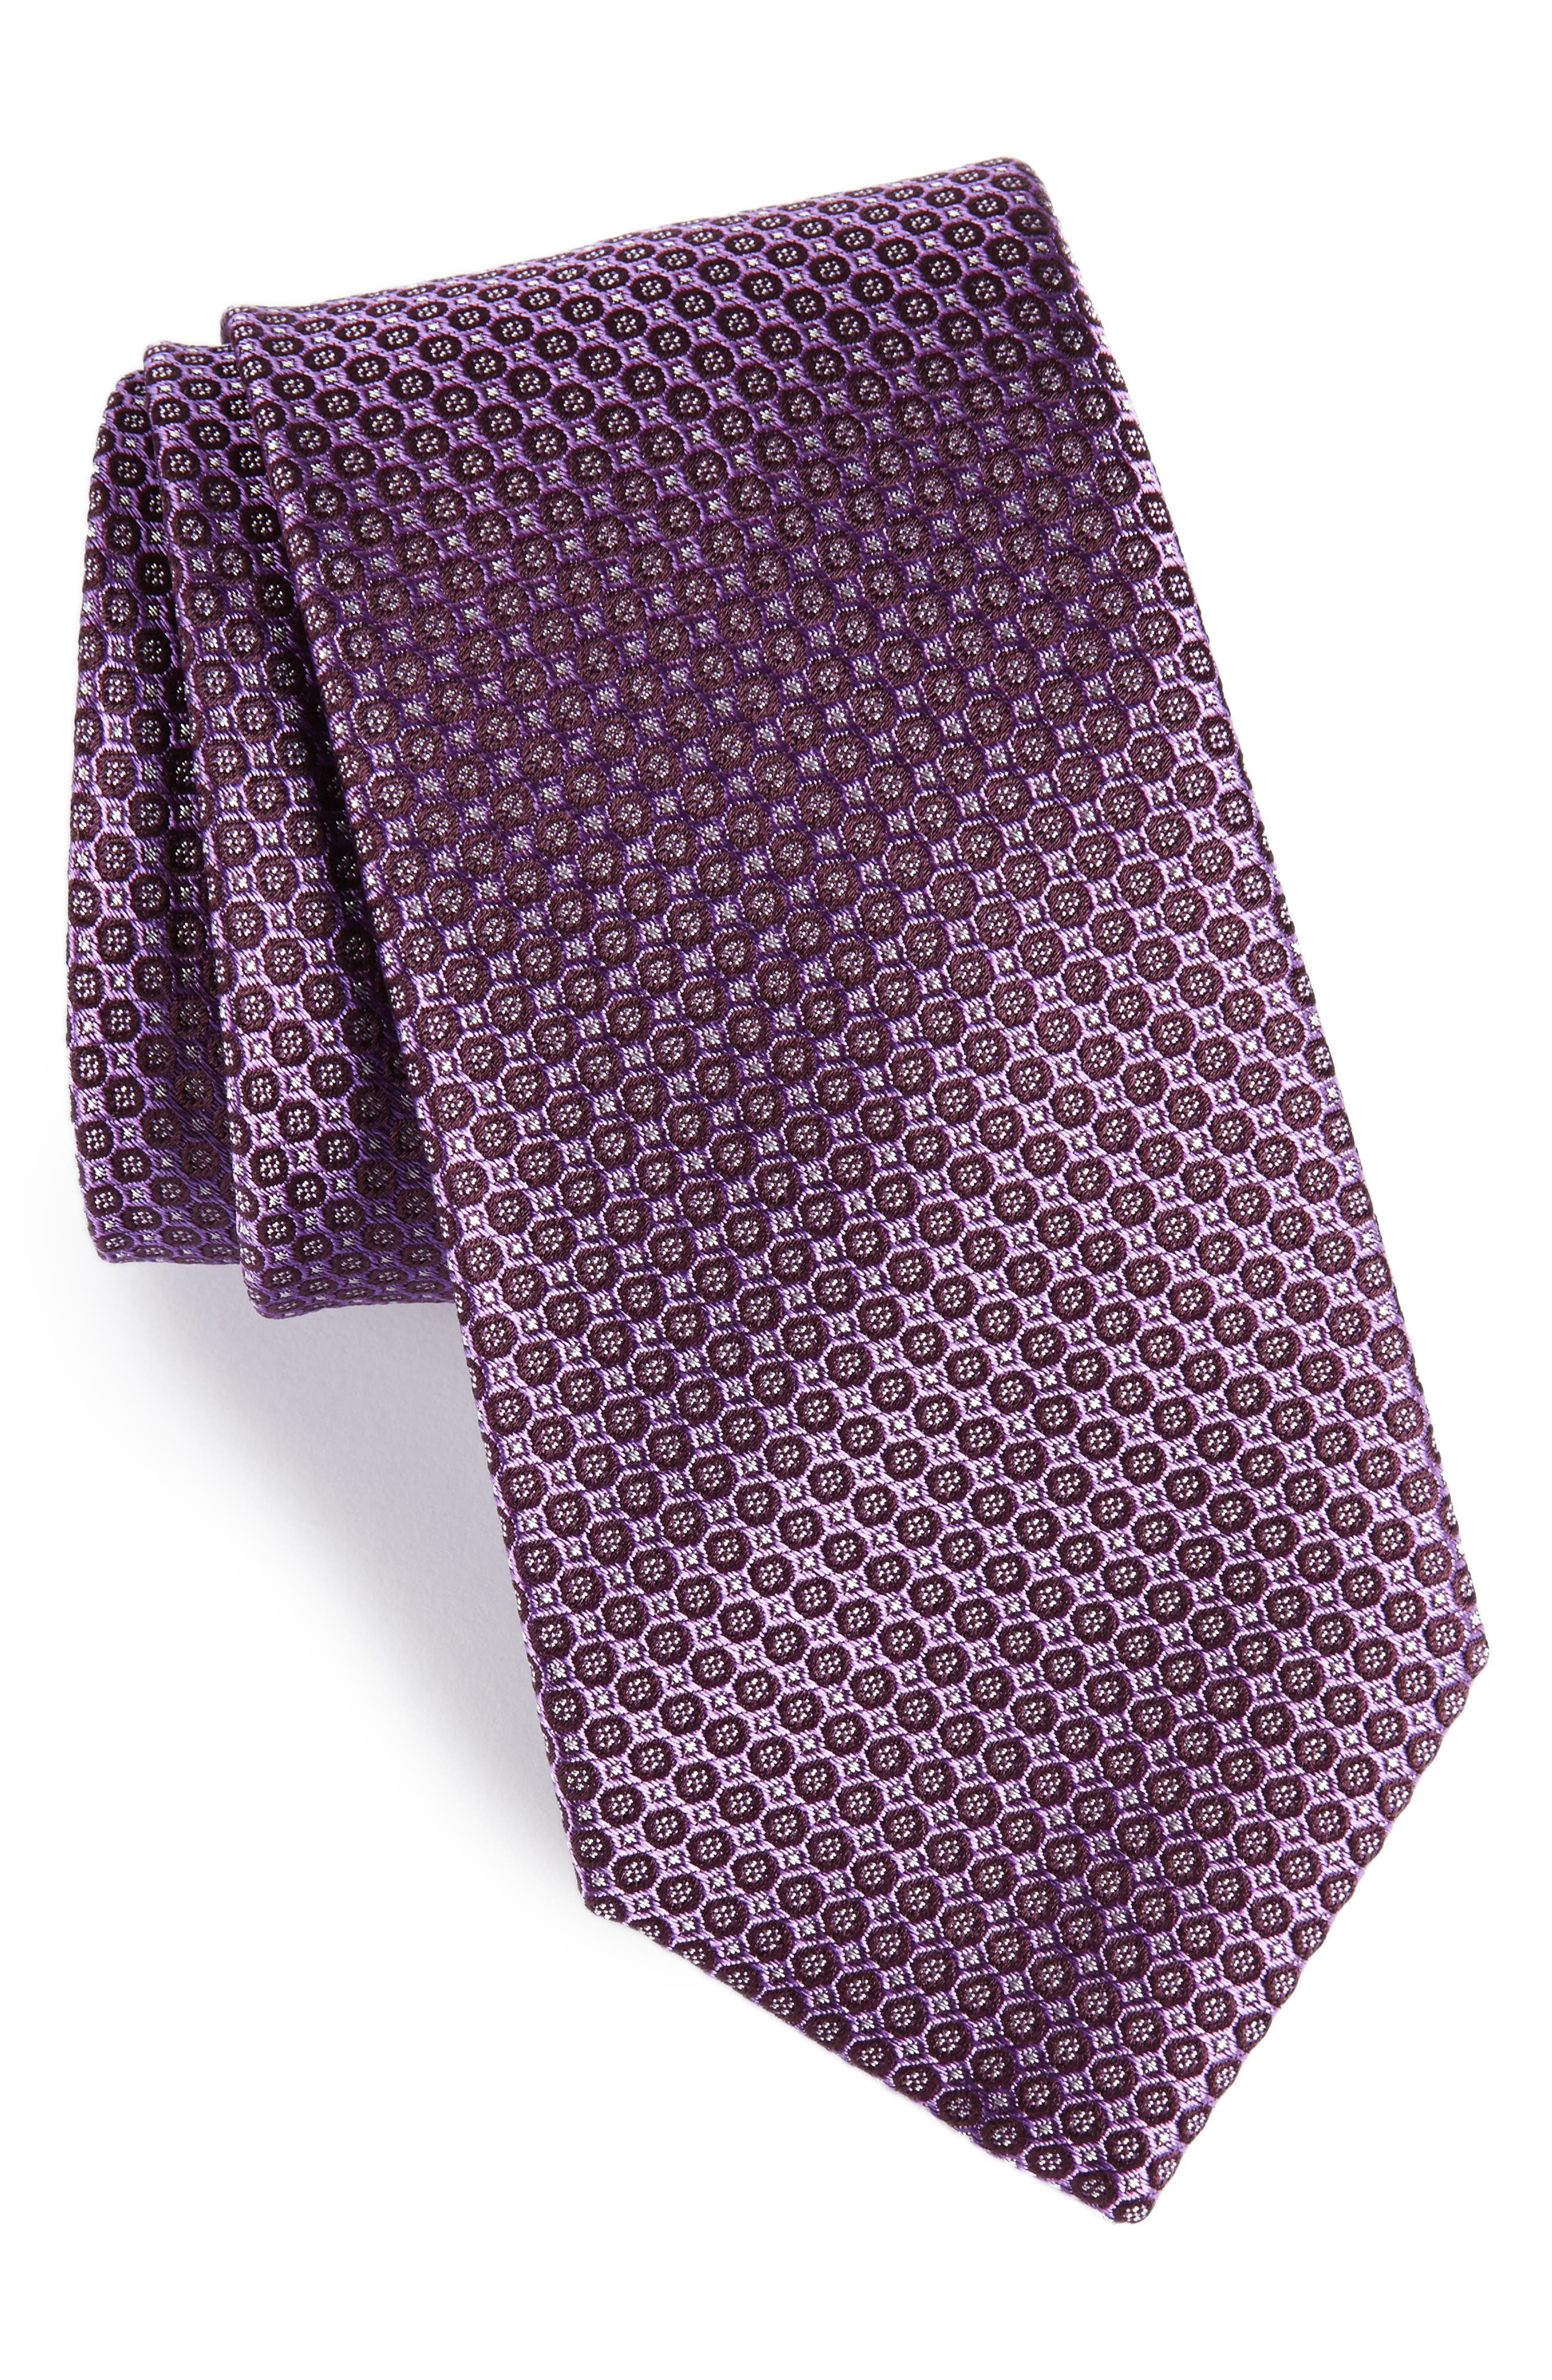 Park Ave Solid Silk Tie,                             Main thumbnail 1, color,                             Purple